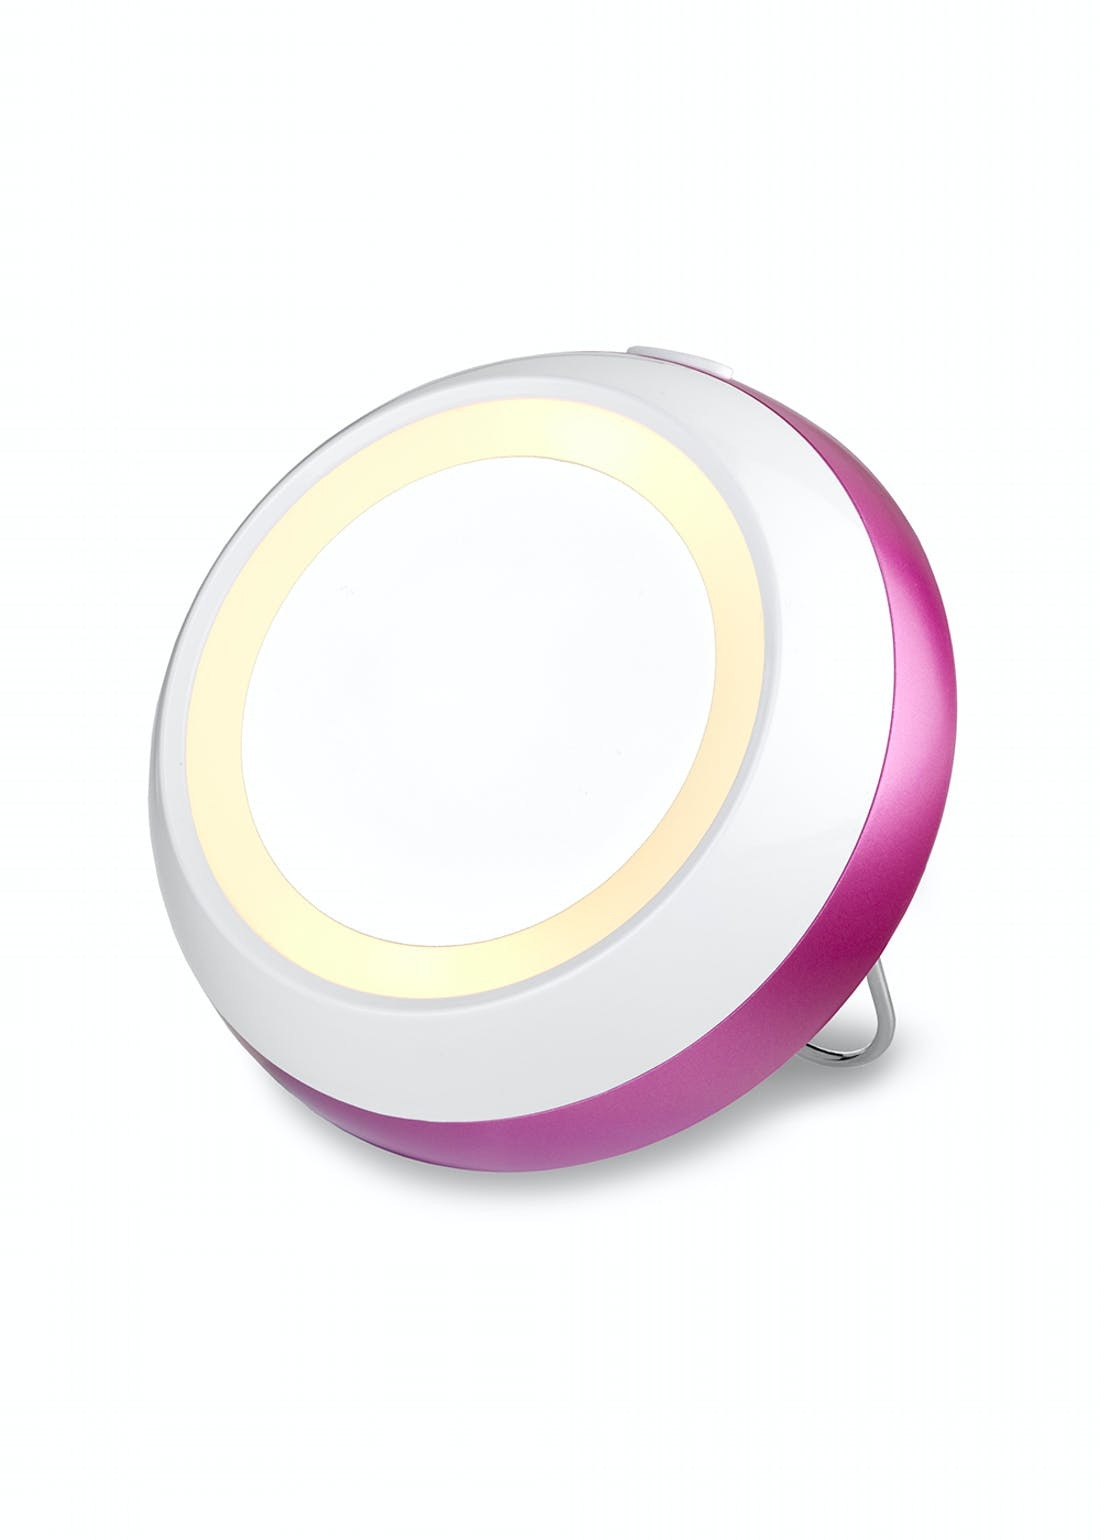 BaByliss Reflections Illuminated Globe Mirror